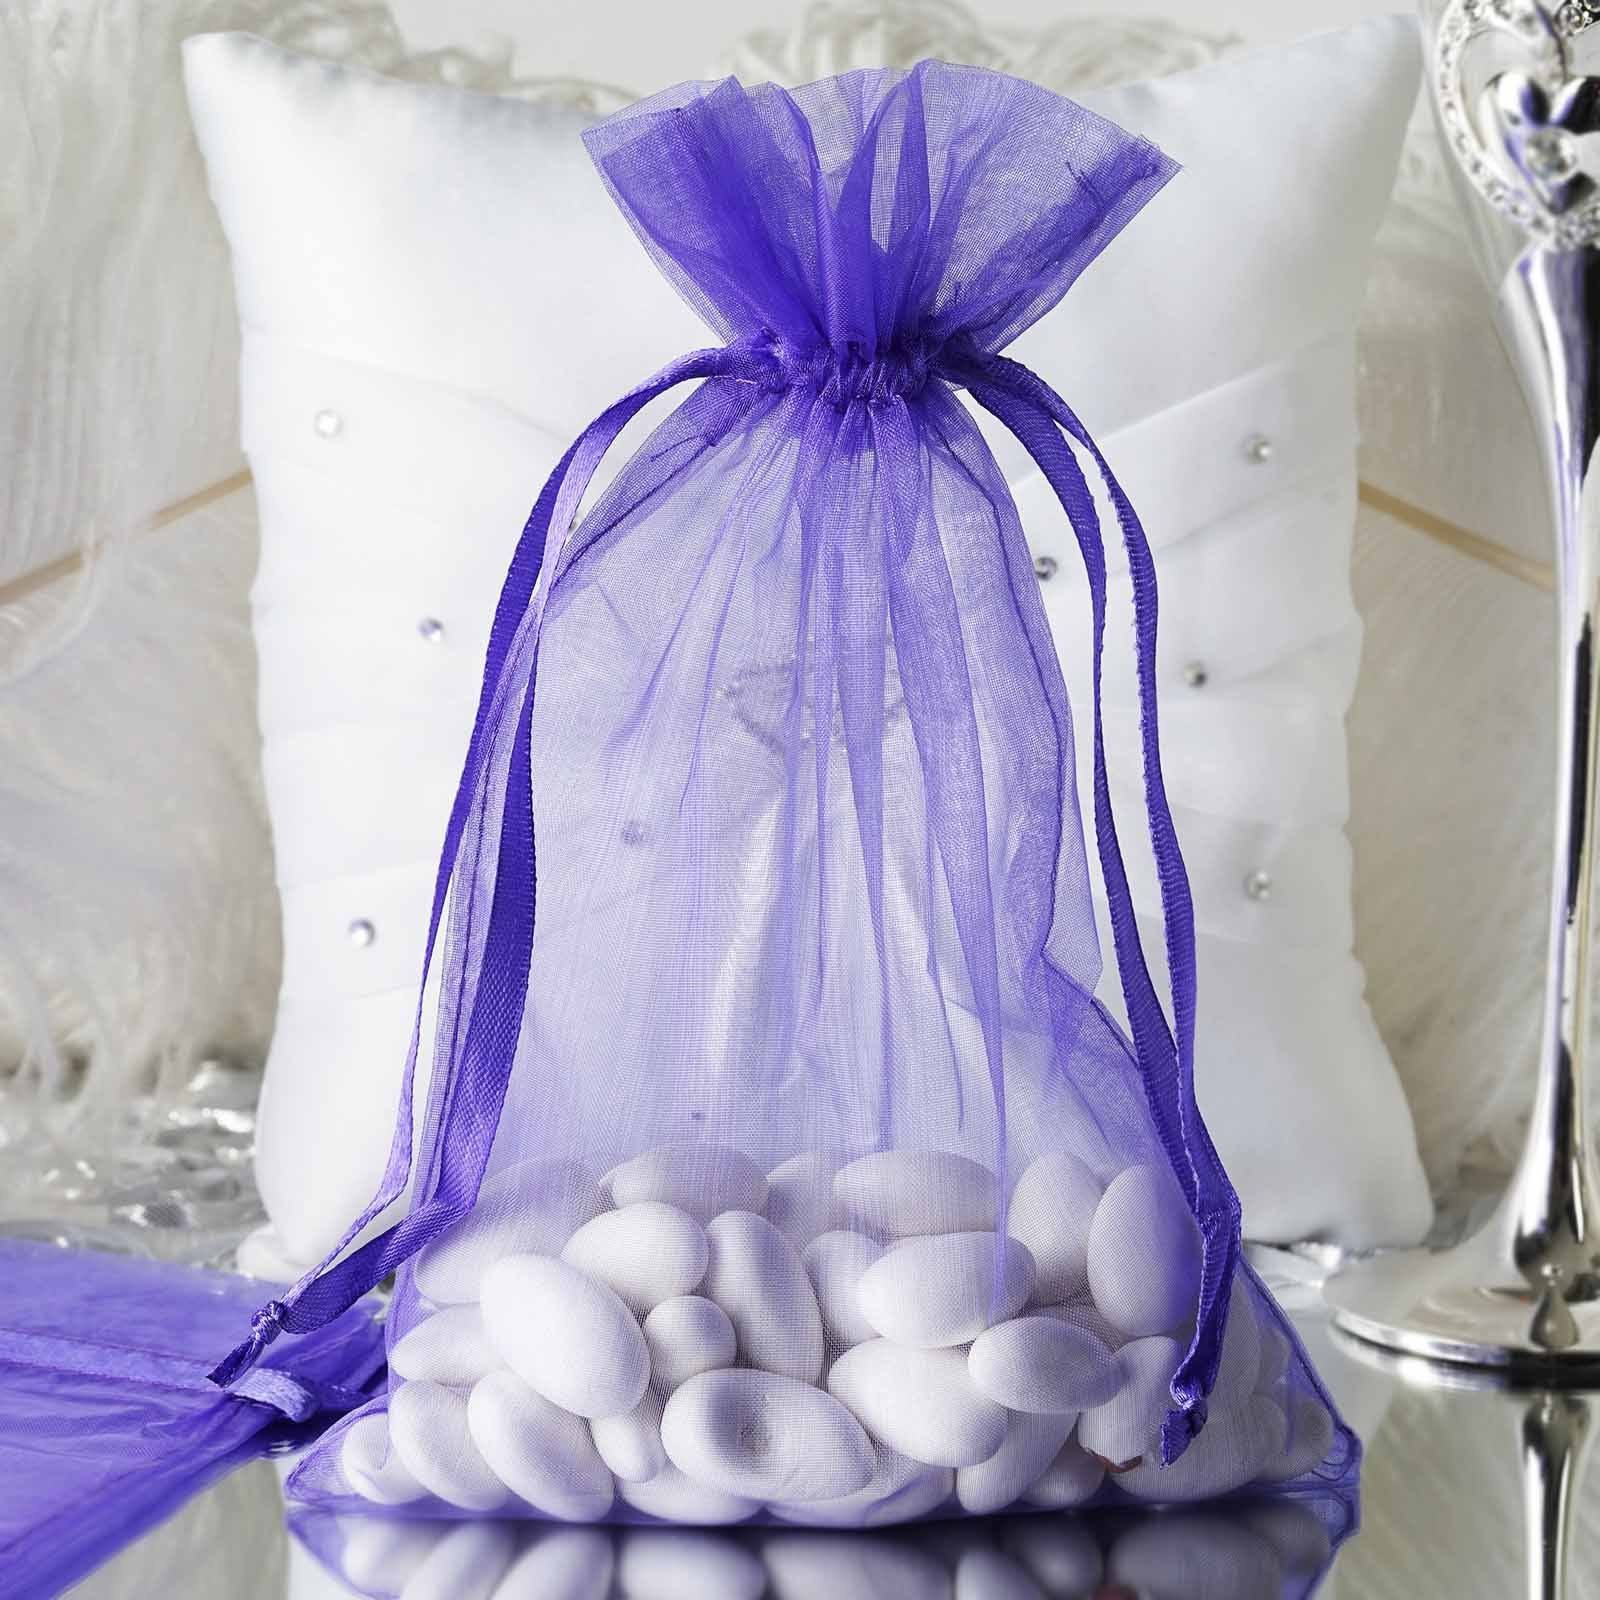 WEDDINGPARTYBRIDAL SHOWEREVENTFAVOURS ORGANZA SWEET BAGS PREFILLED